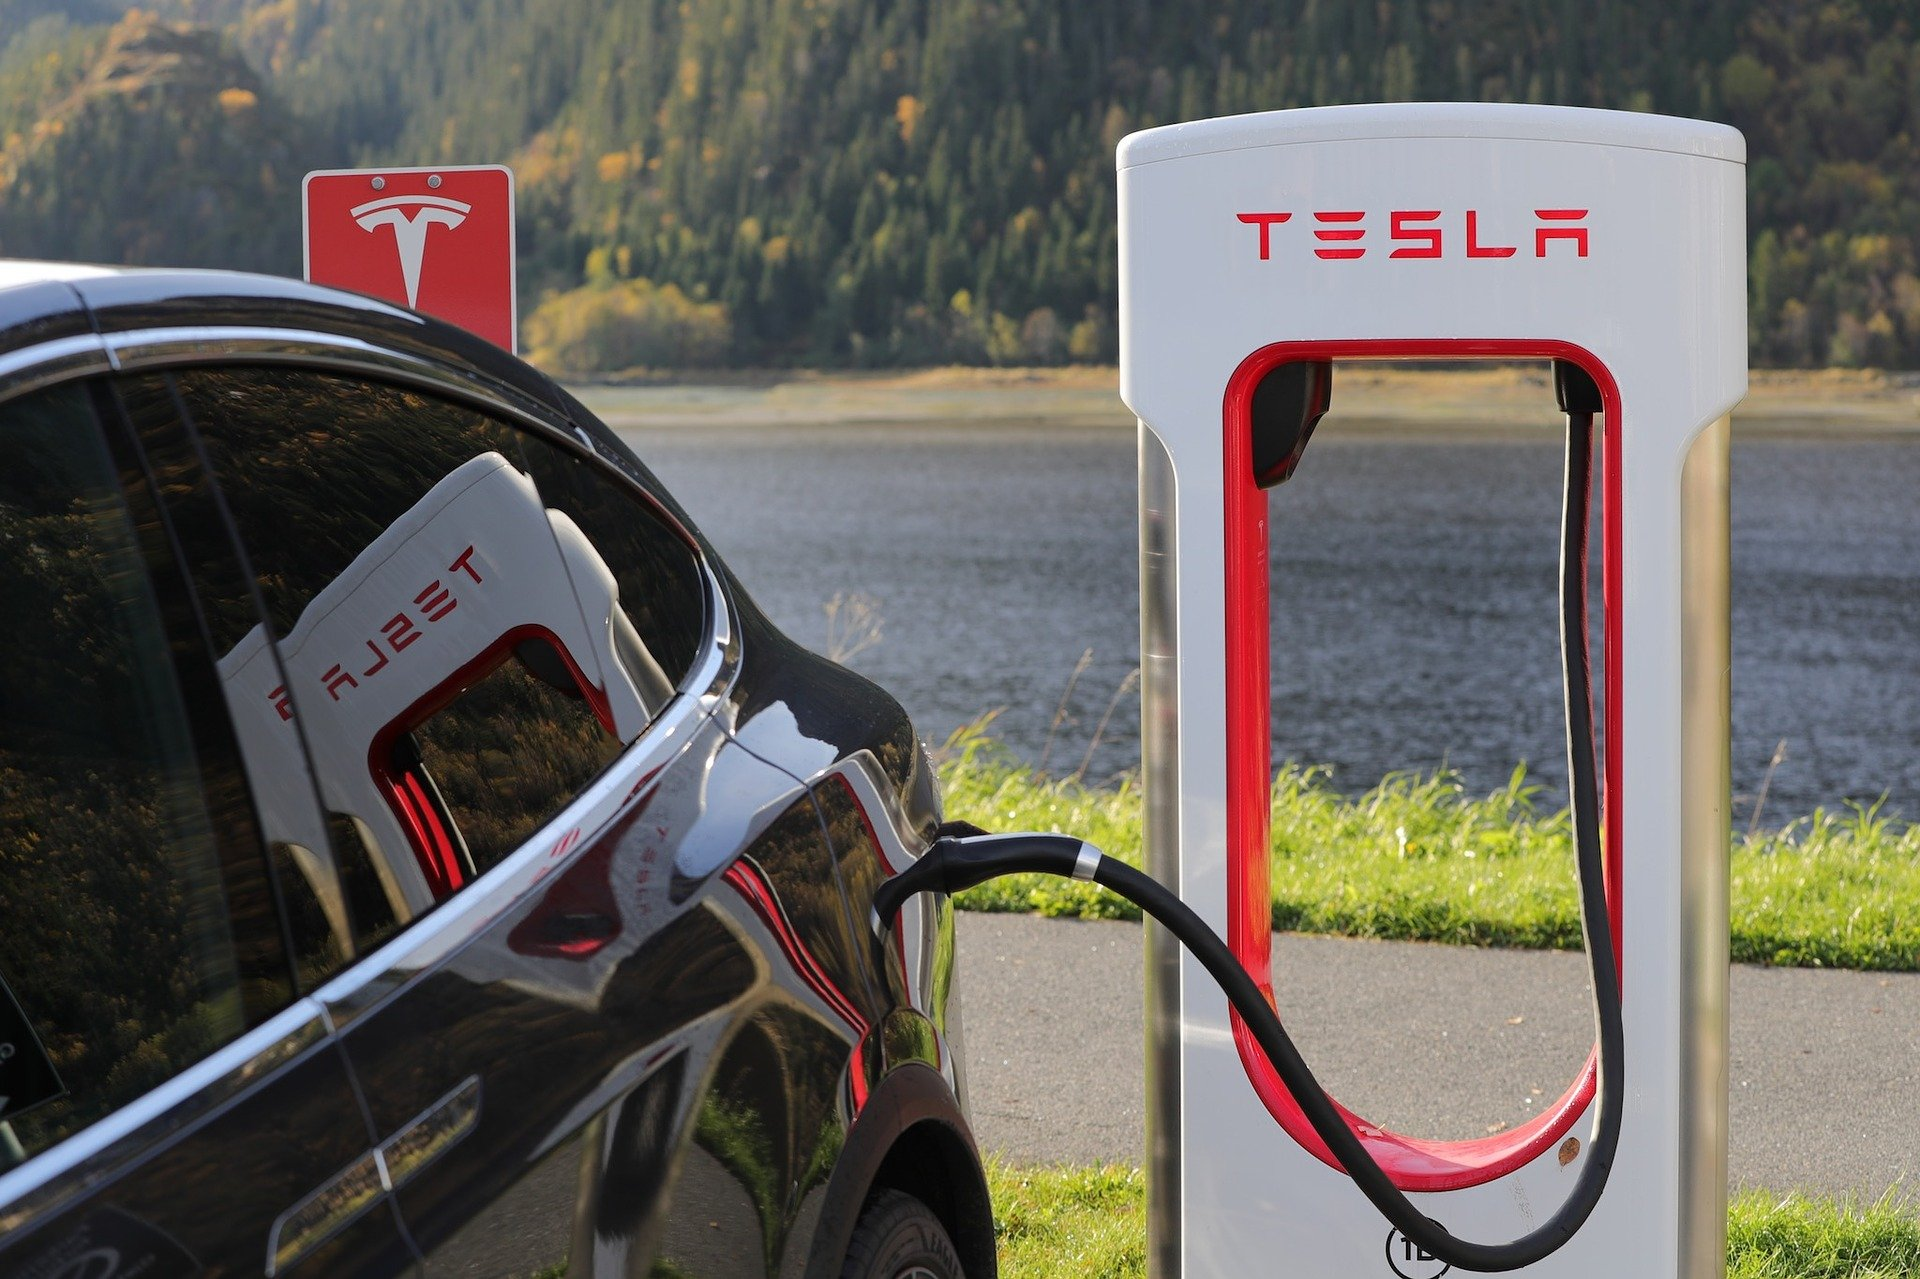 Tesla's secret is revealed - find out their tactic!